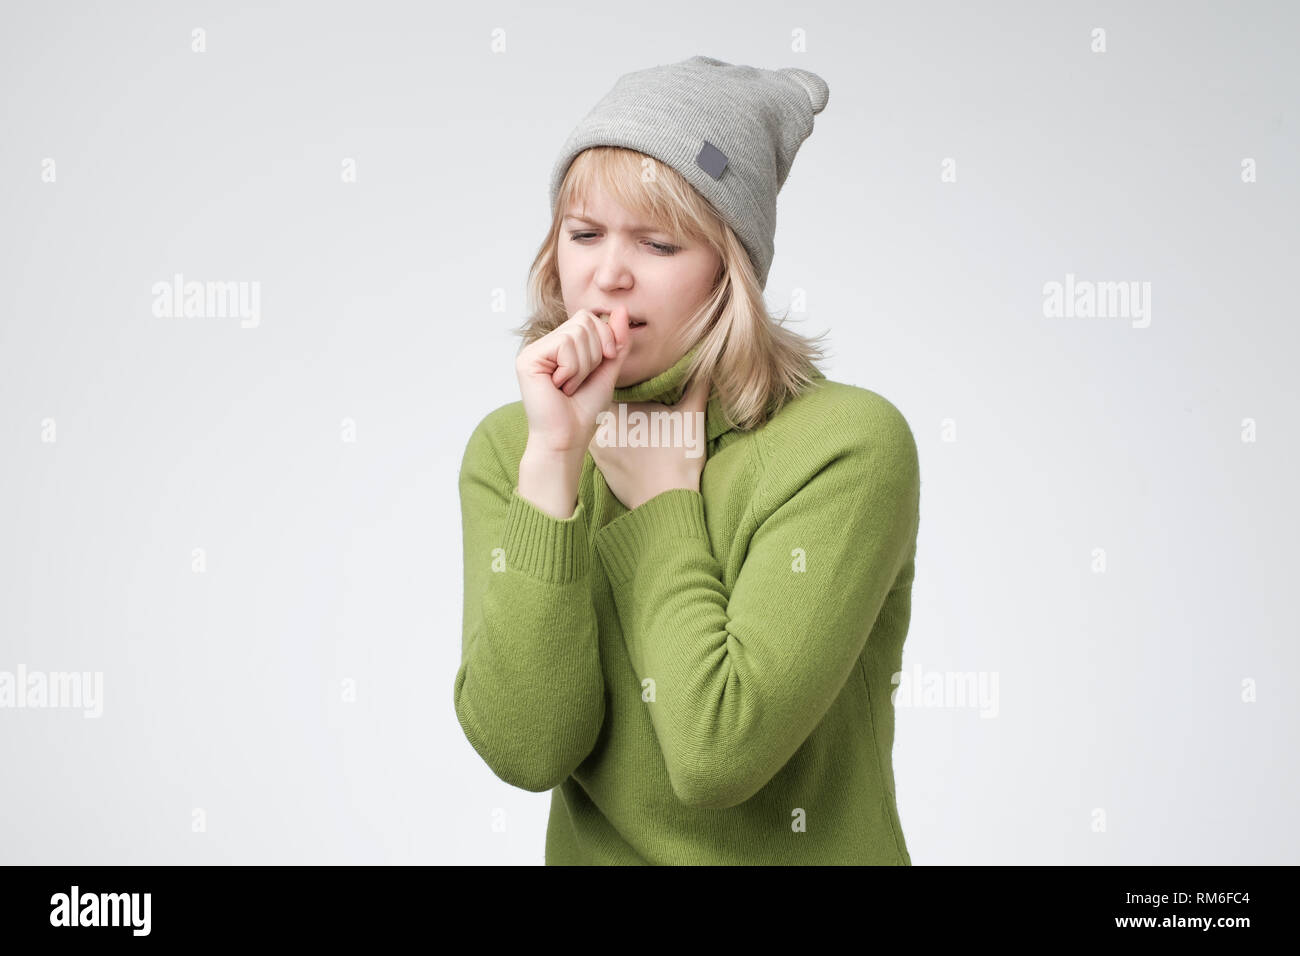 Unhealthy young blonde woman coughing a lot, suffering with cough, has a chest pain - Stock Image